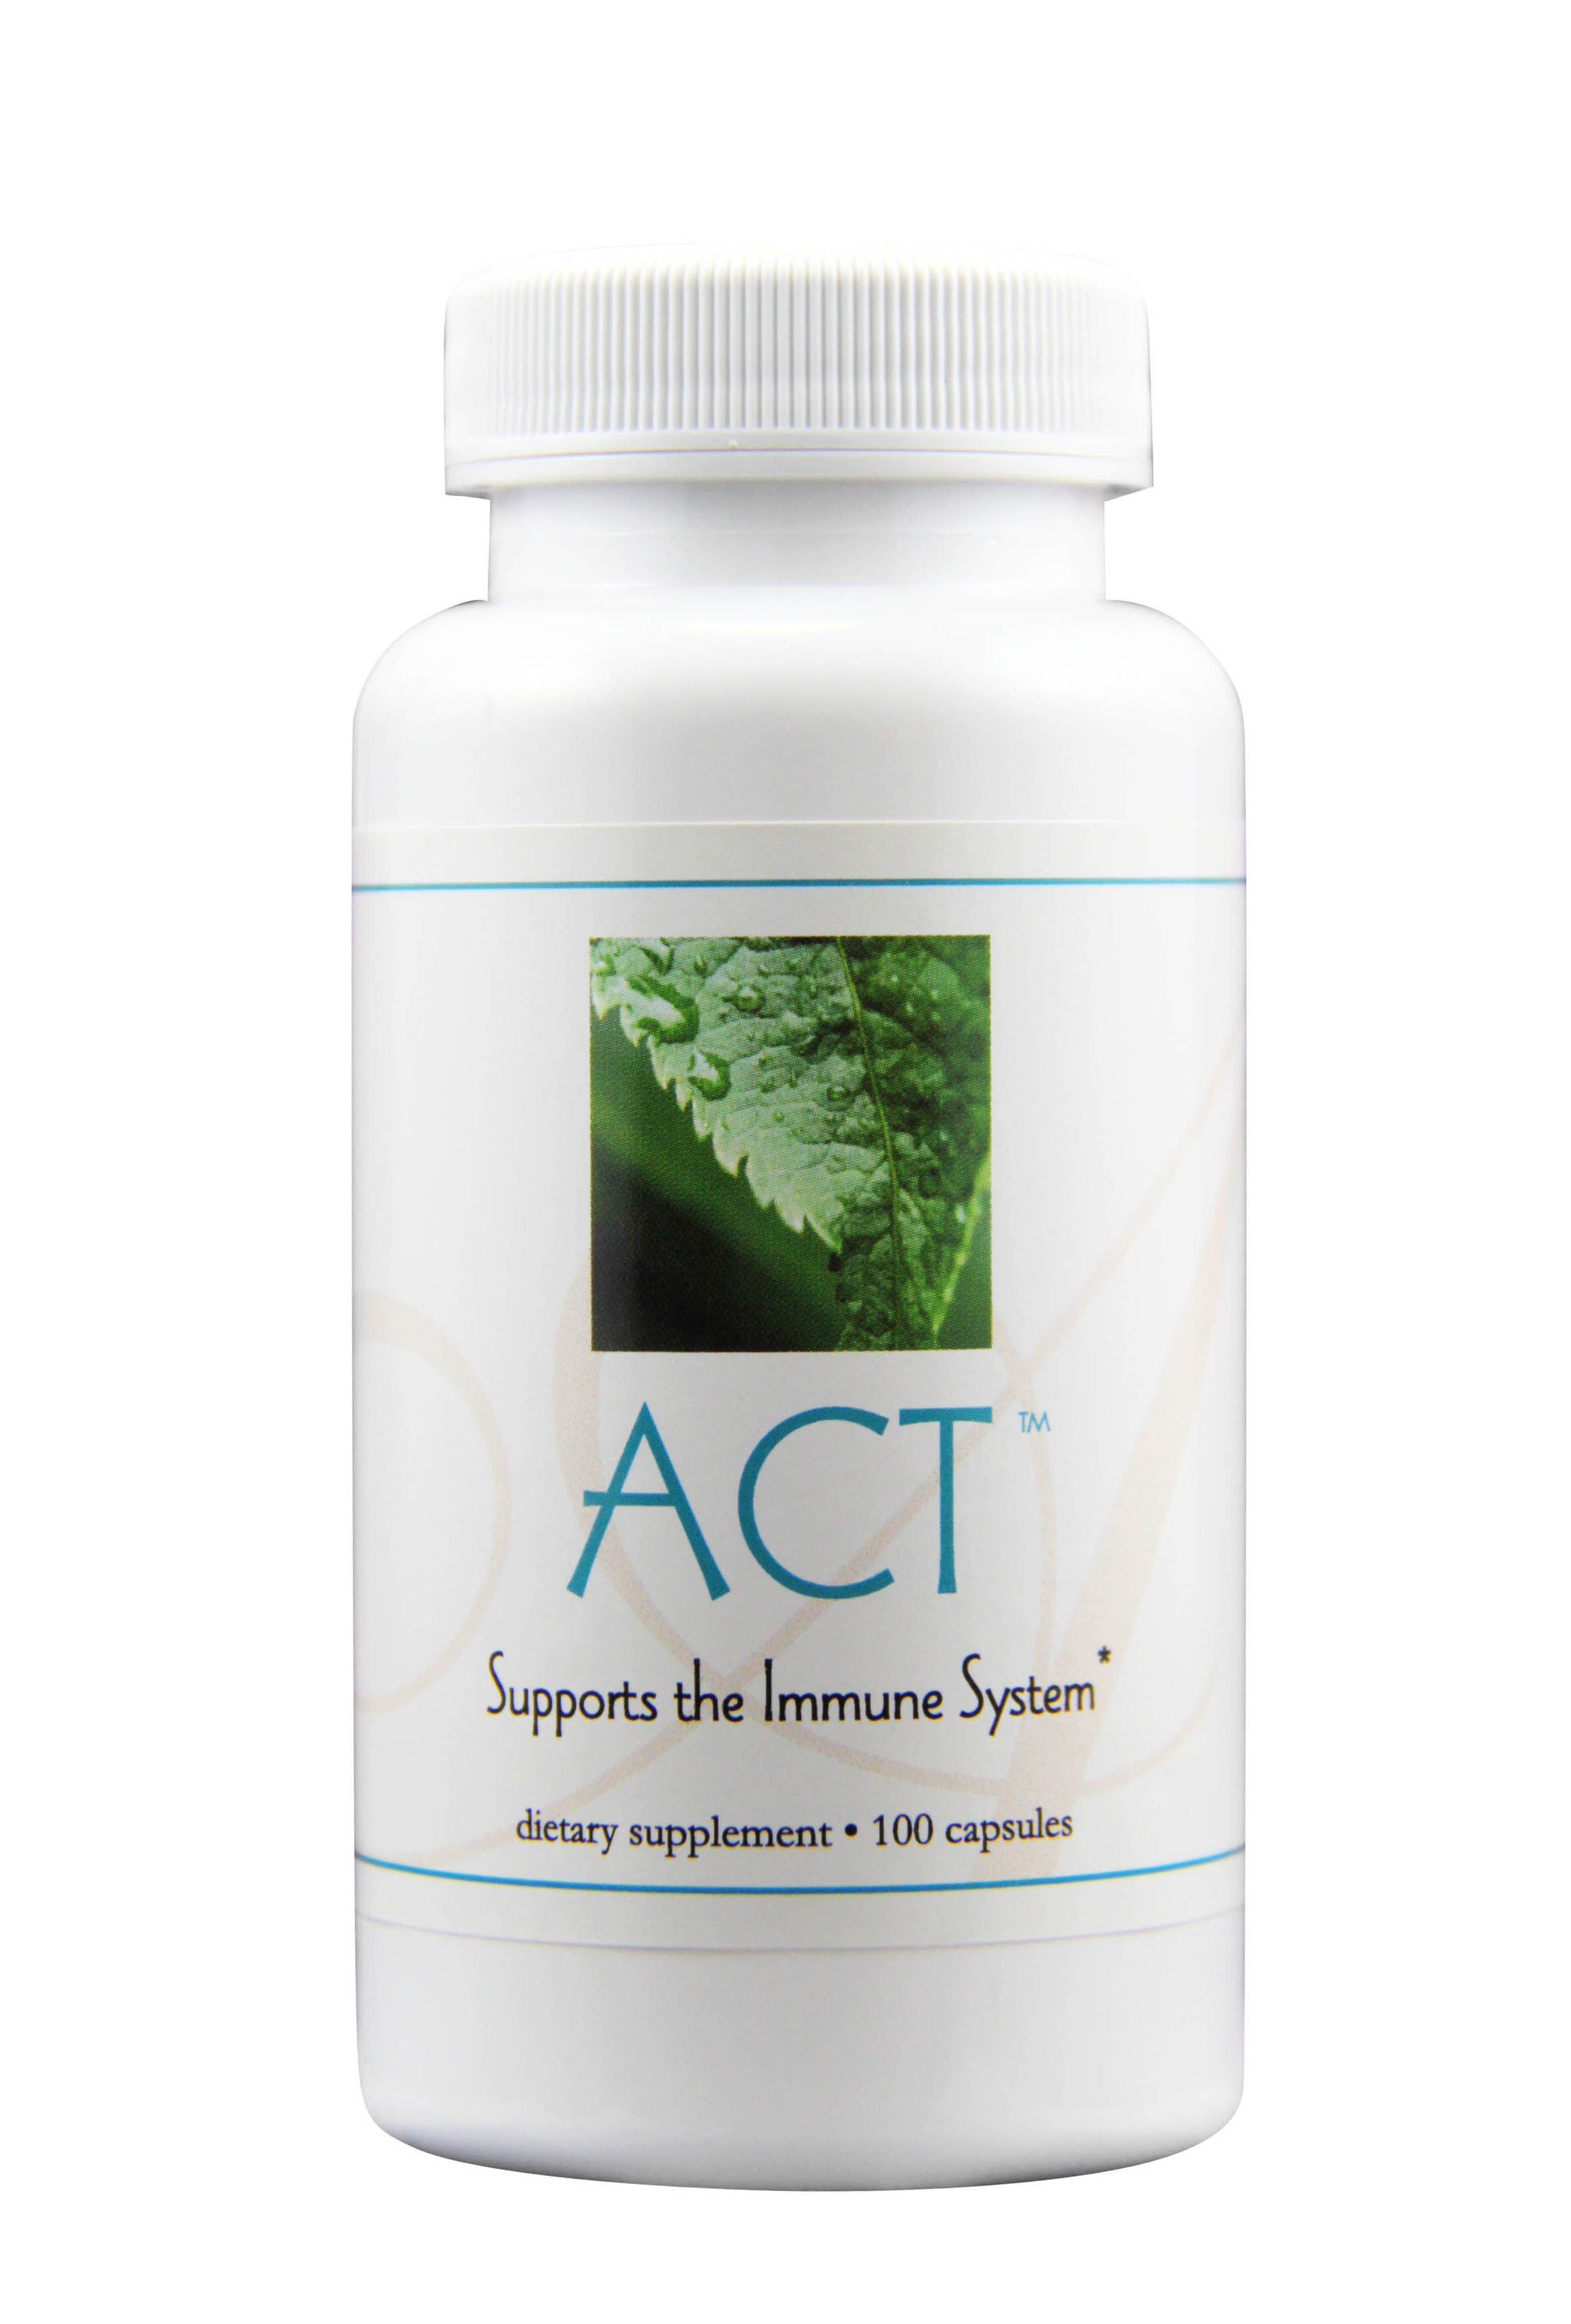 ACT - HELPS TO PROMOTE A HEALTHY IMMUNE SYSTEM*Featured Ingredients: Luffa, Reishi, Barley Leaf, Tangerine Peel